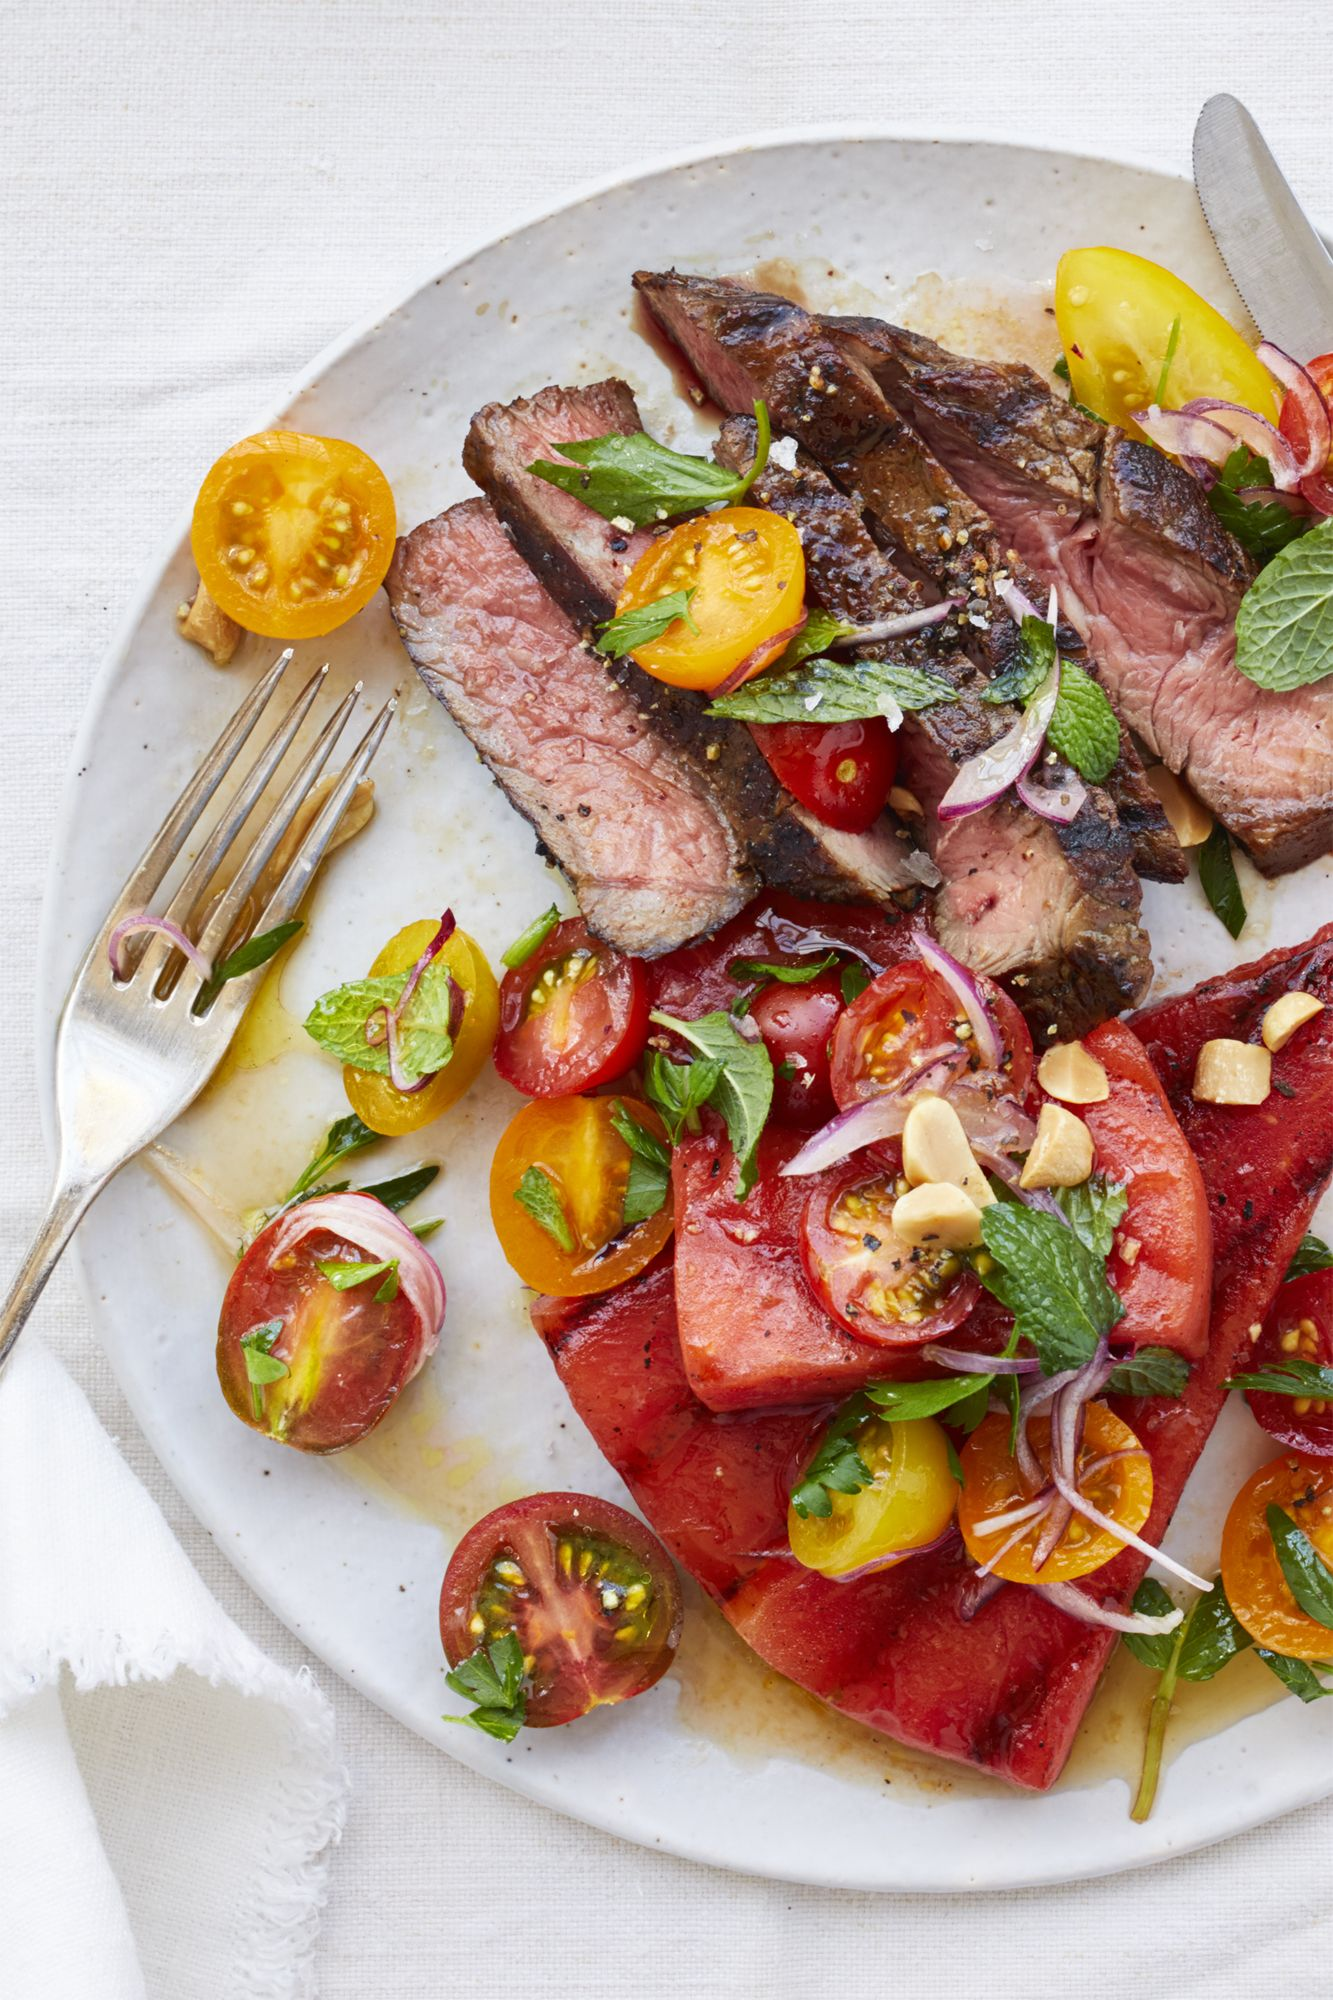 Grilled Watermelon Salad with Steak and Tomatoes